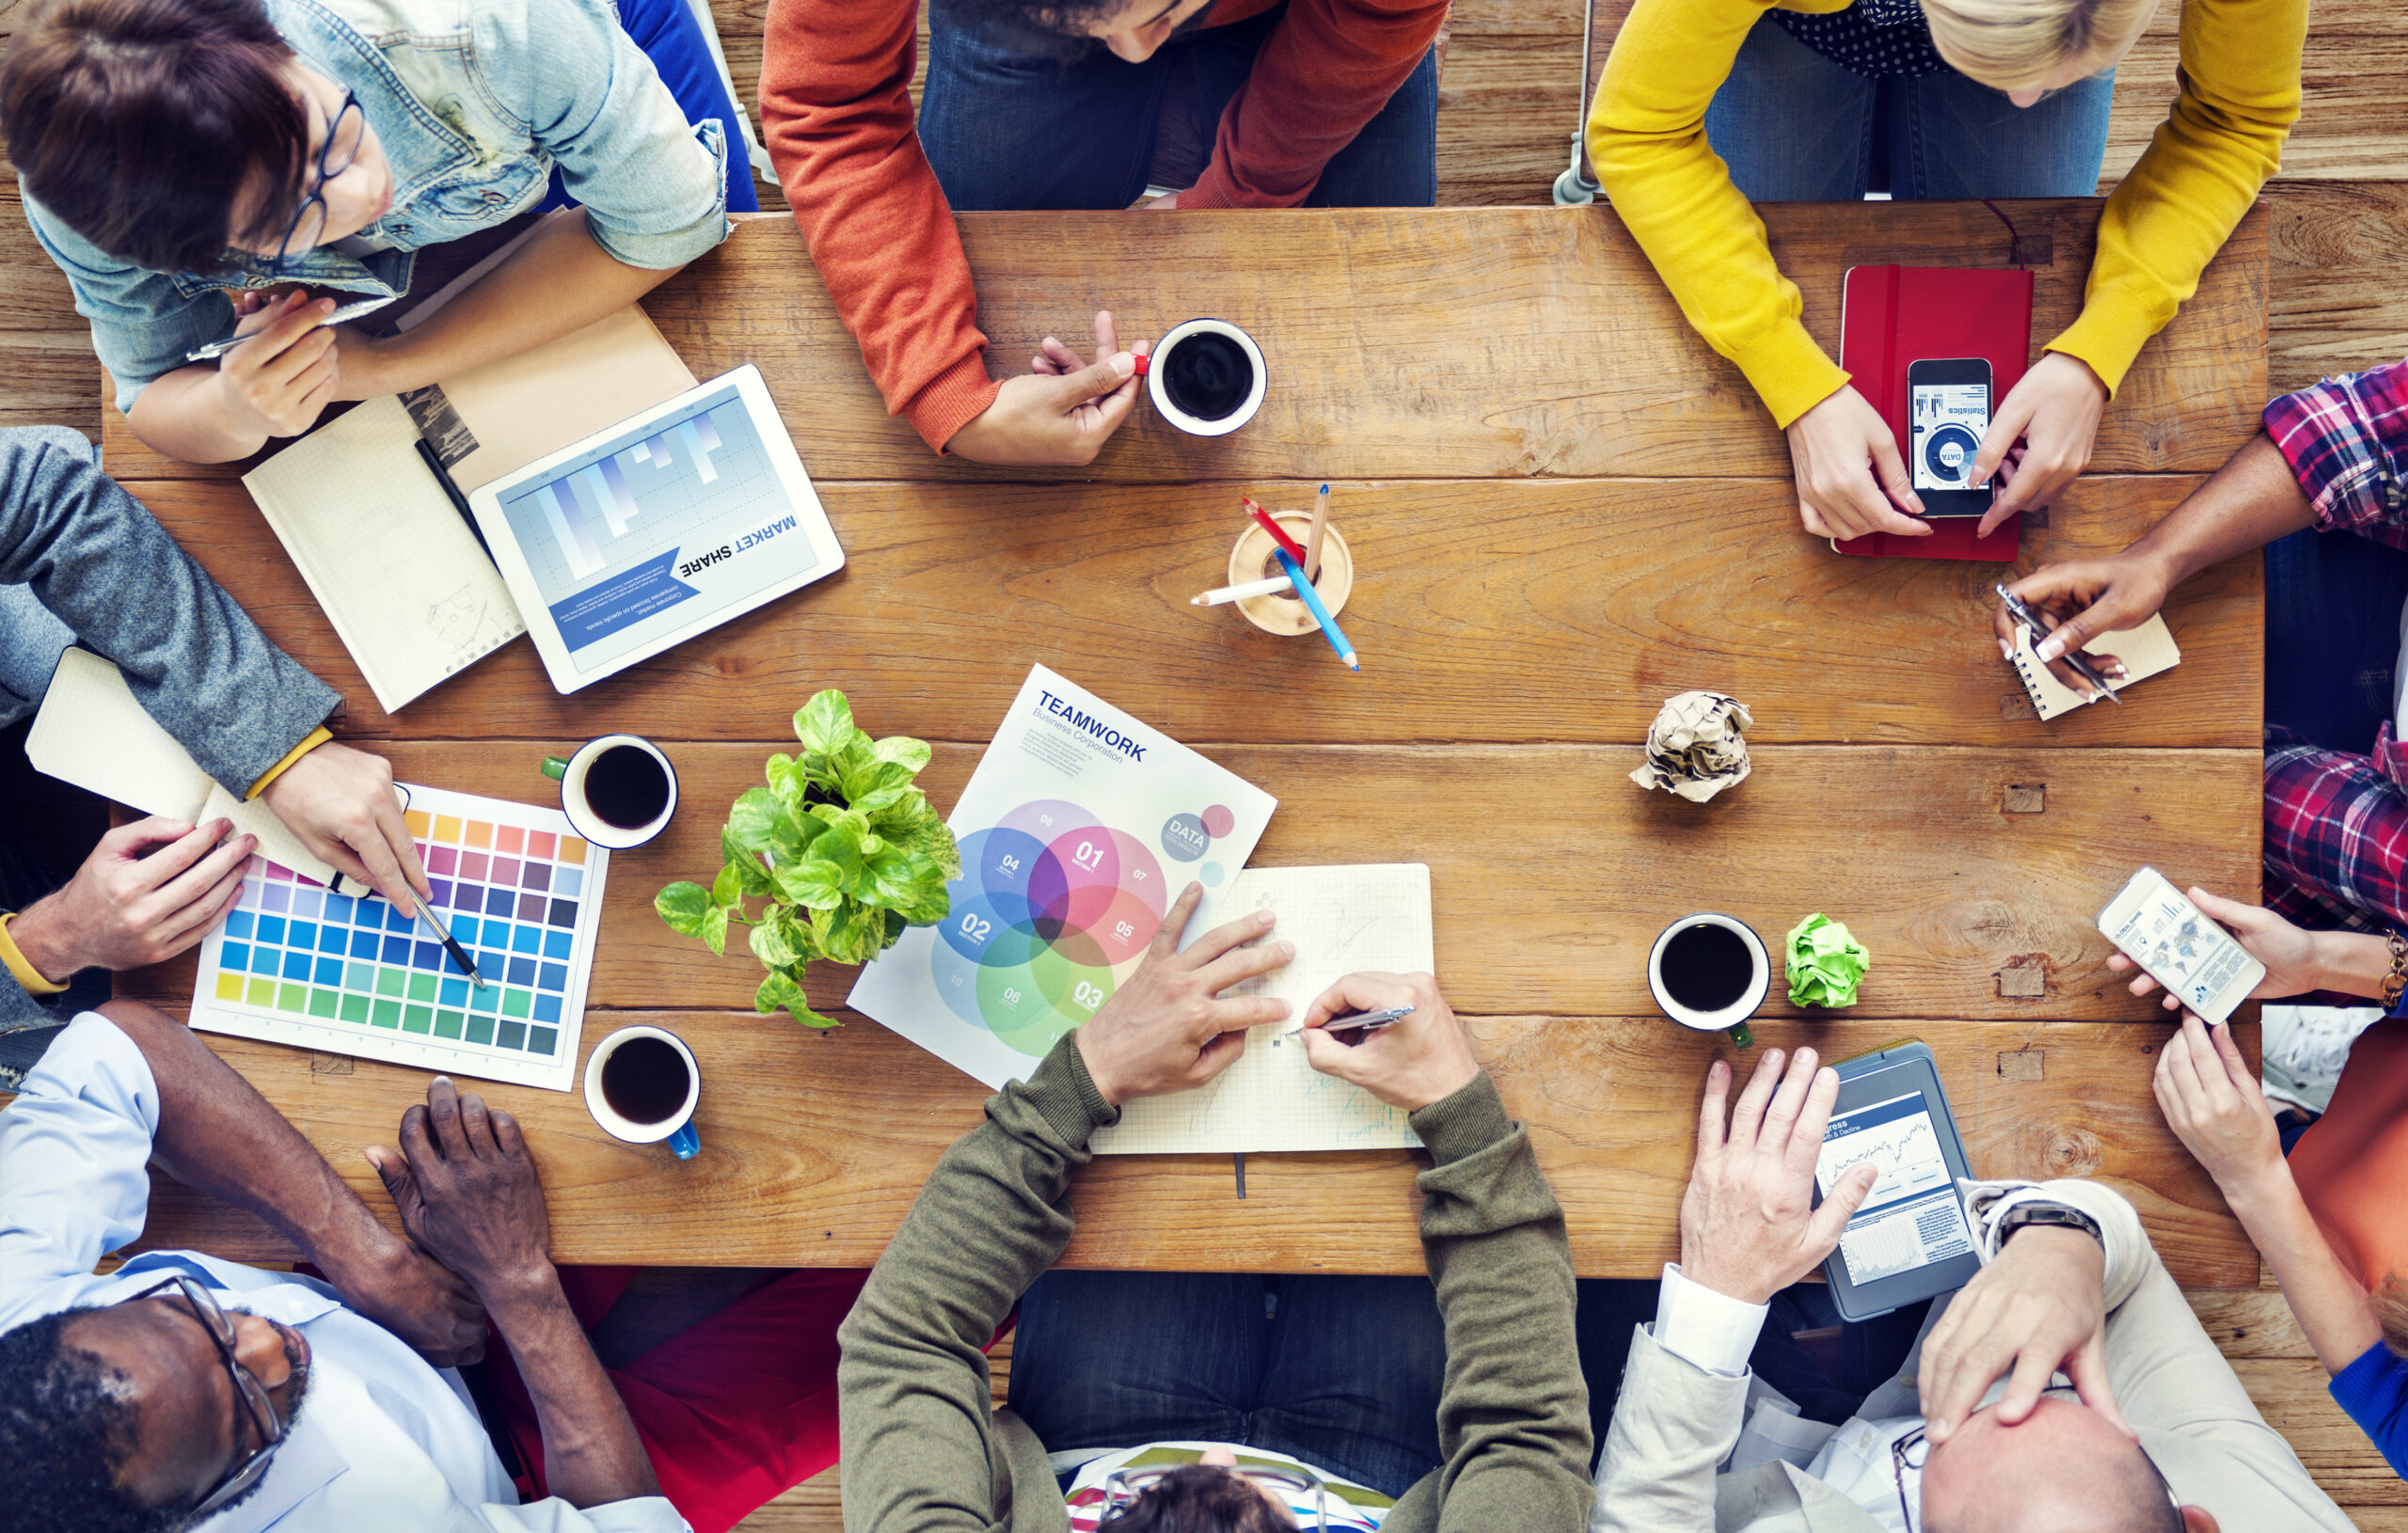 4 Steps Every Startup Must Take To Build Culture, Compete for Talent, and Win